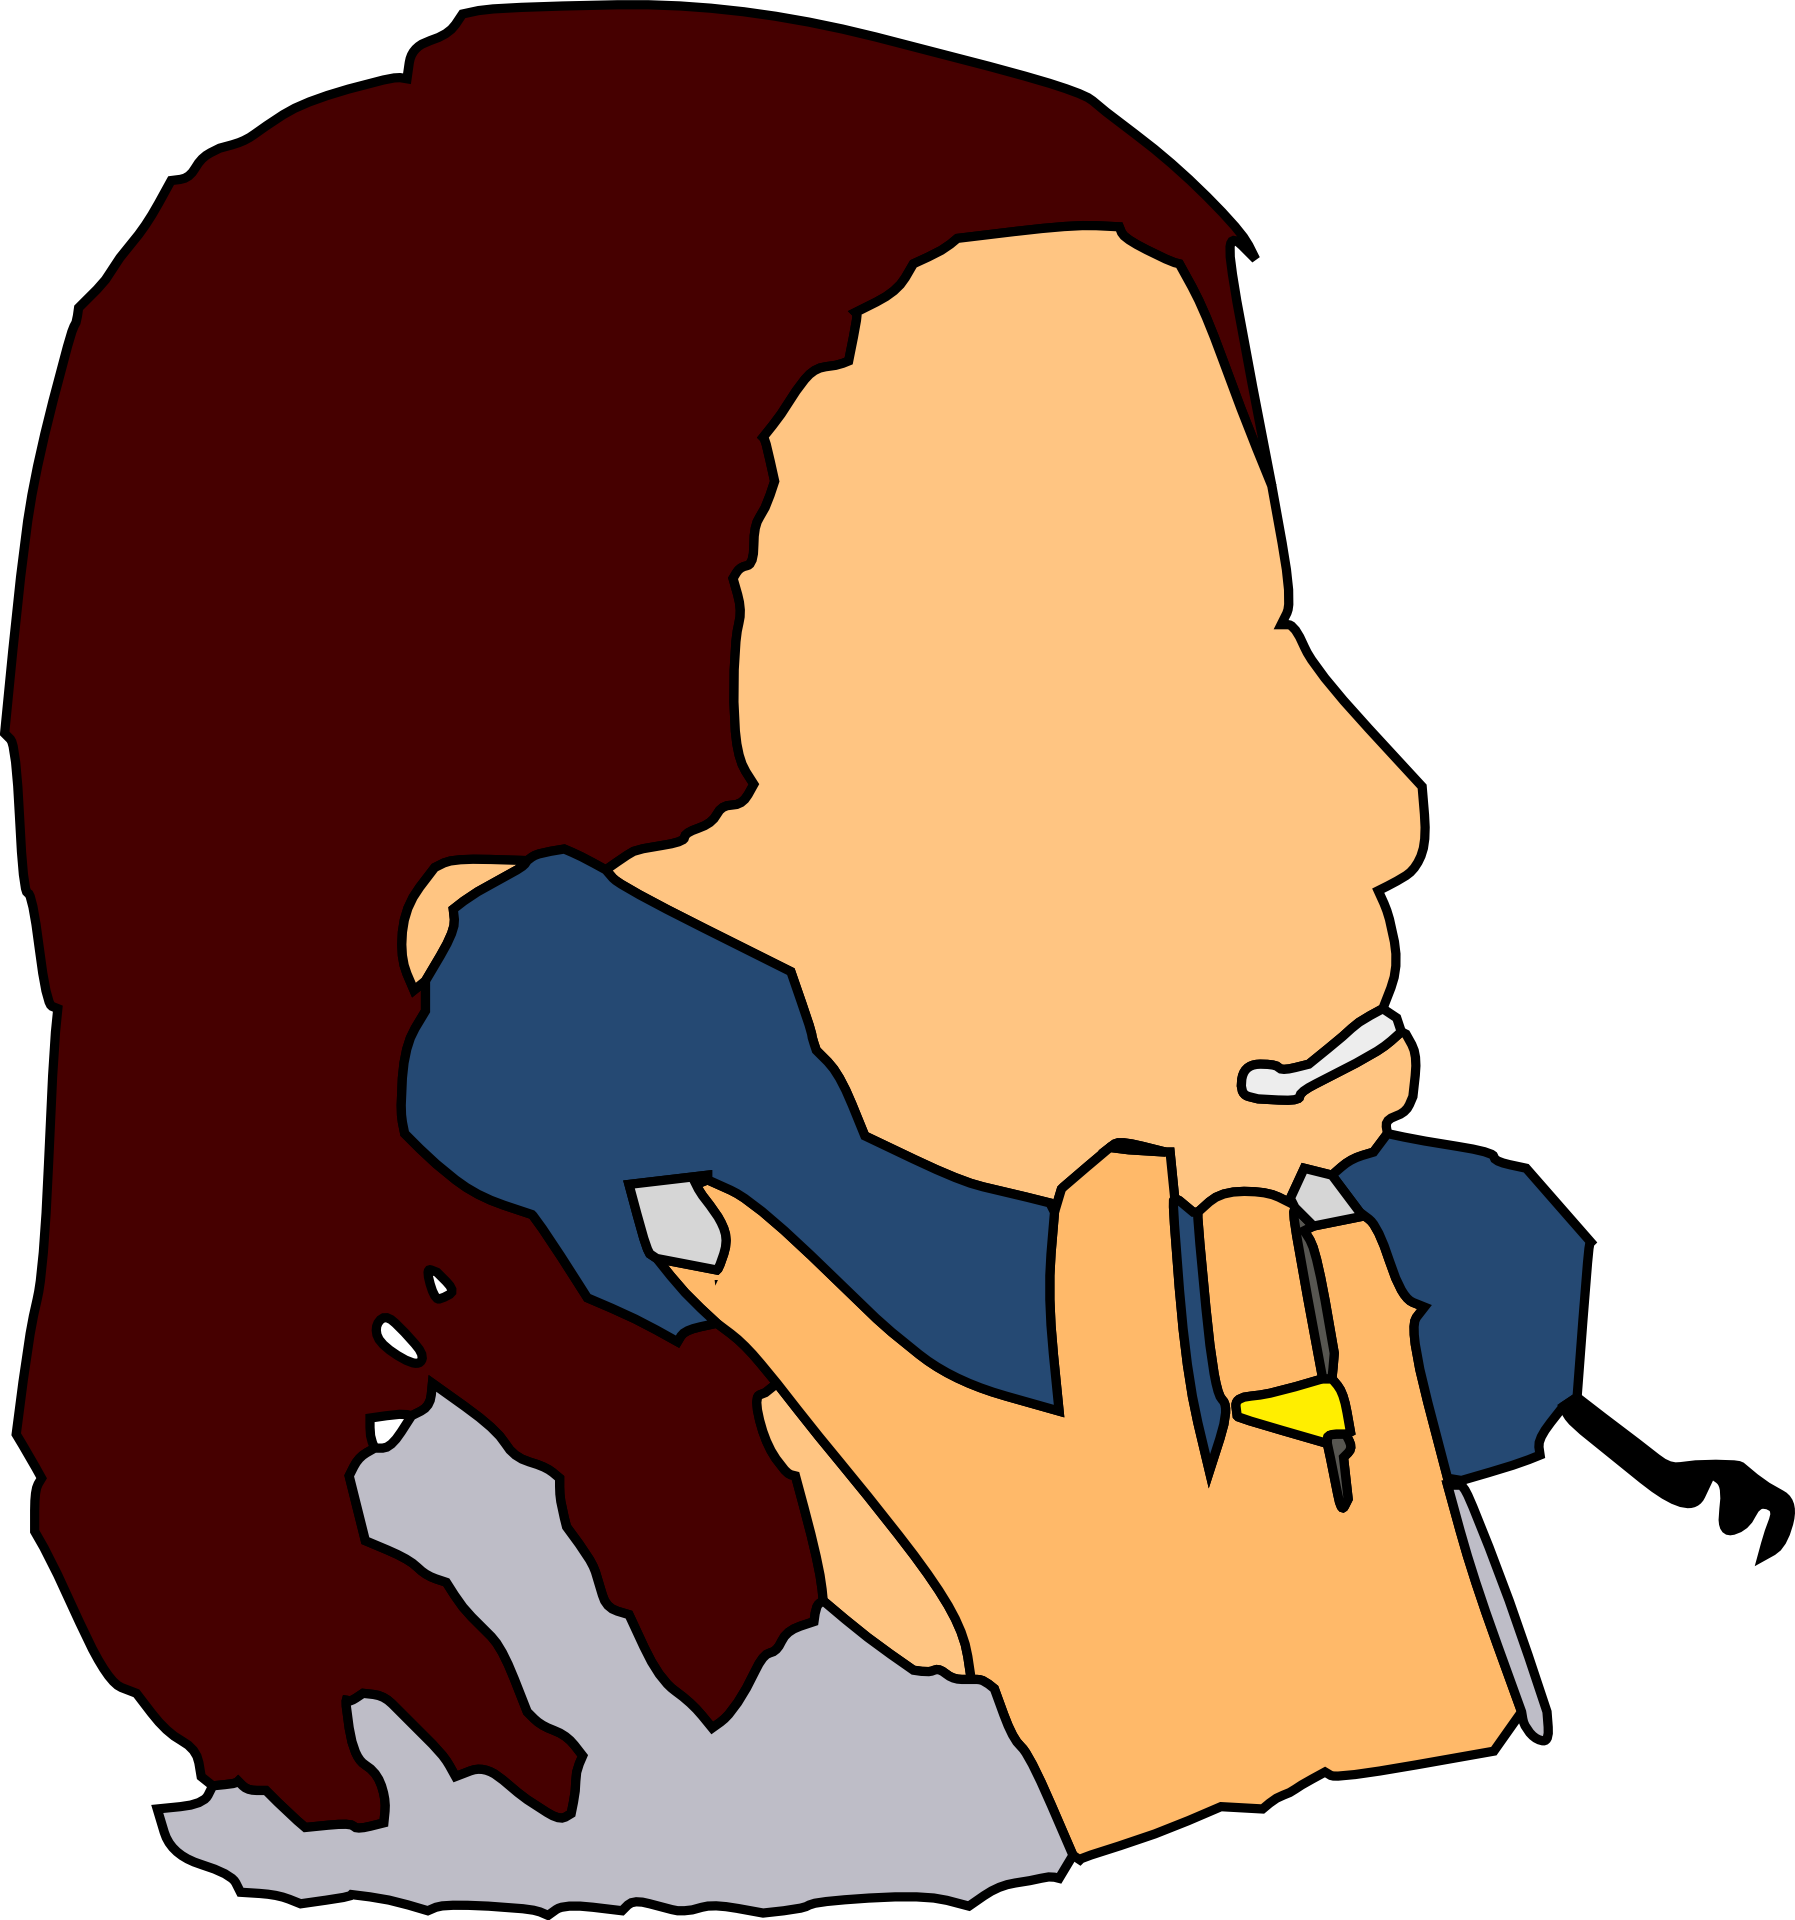 Woman phone clipart picture free stock Woman is talking on the phone clipart free image picture free stock